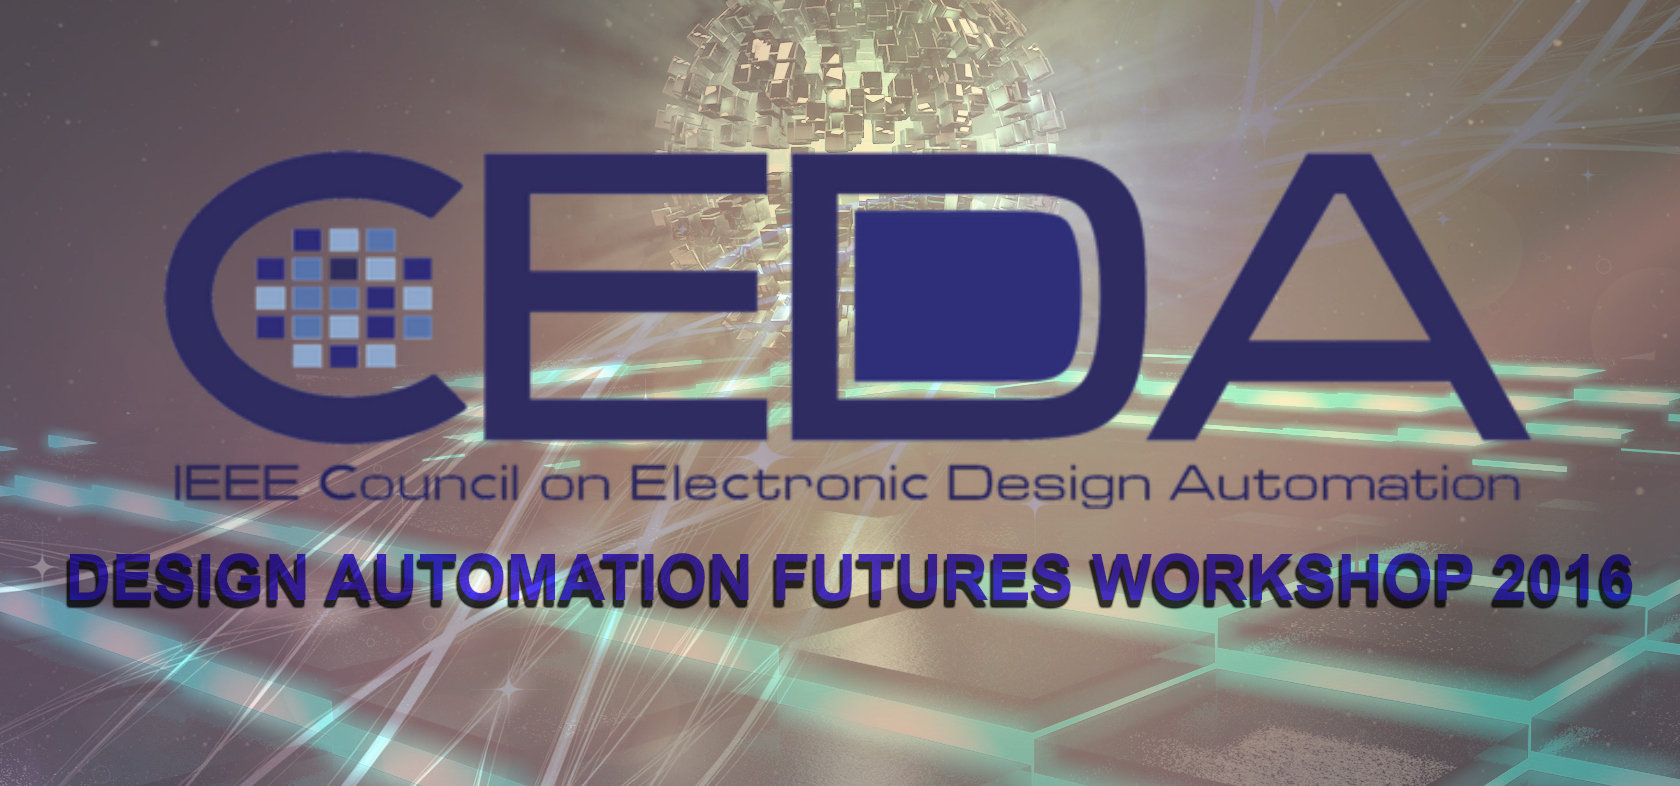 Design Automation Futures Workshop